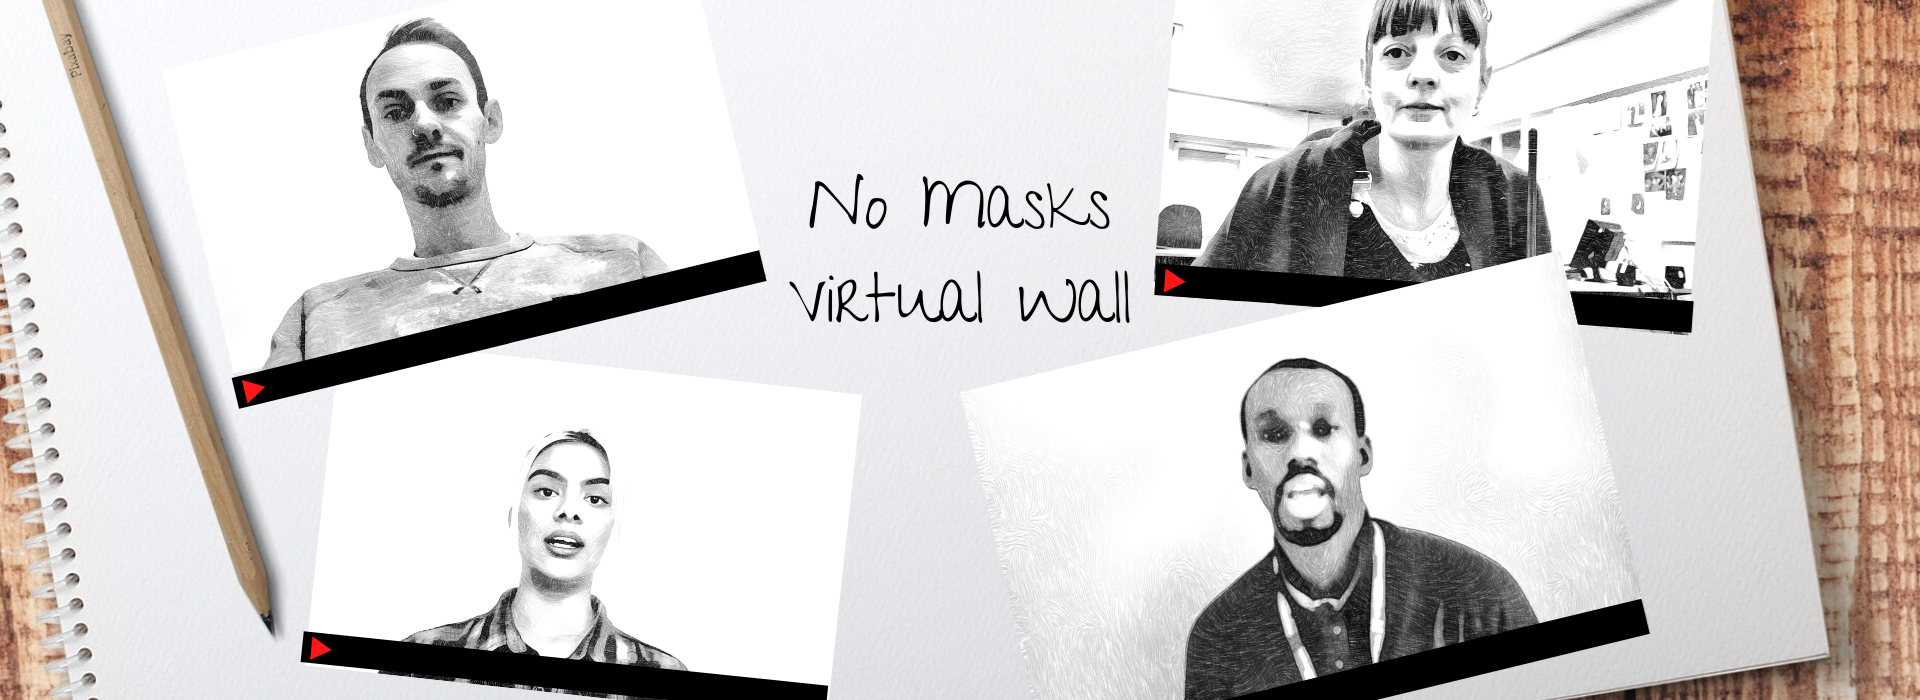 NO MASKS - VIRTUAL WALL